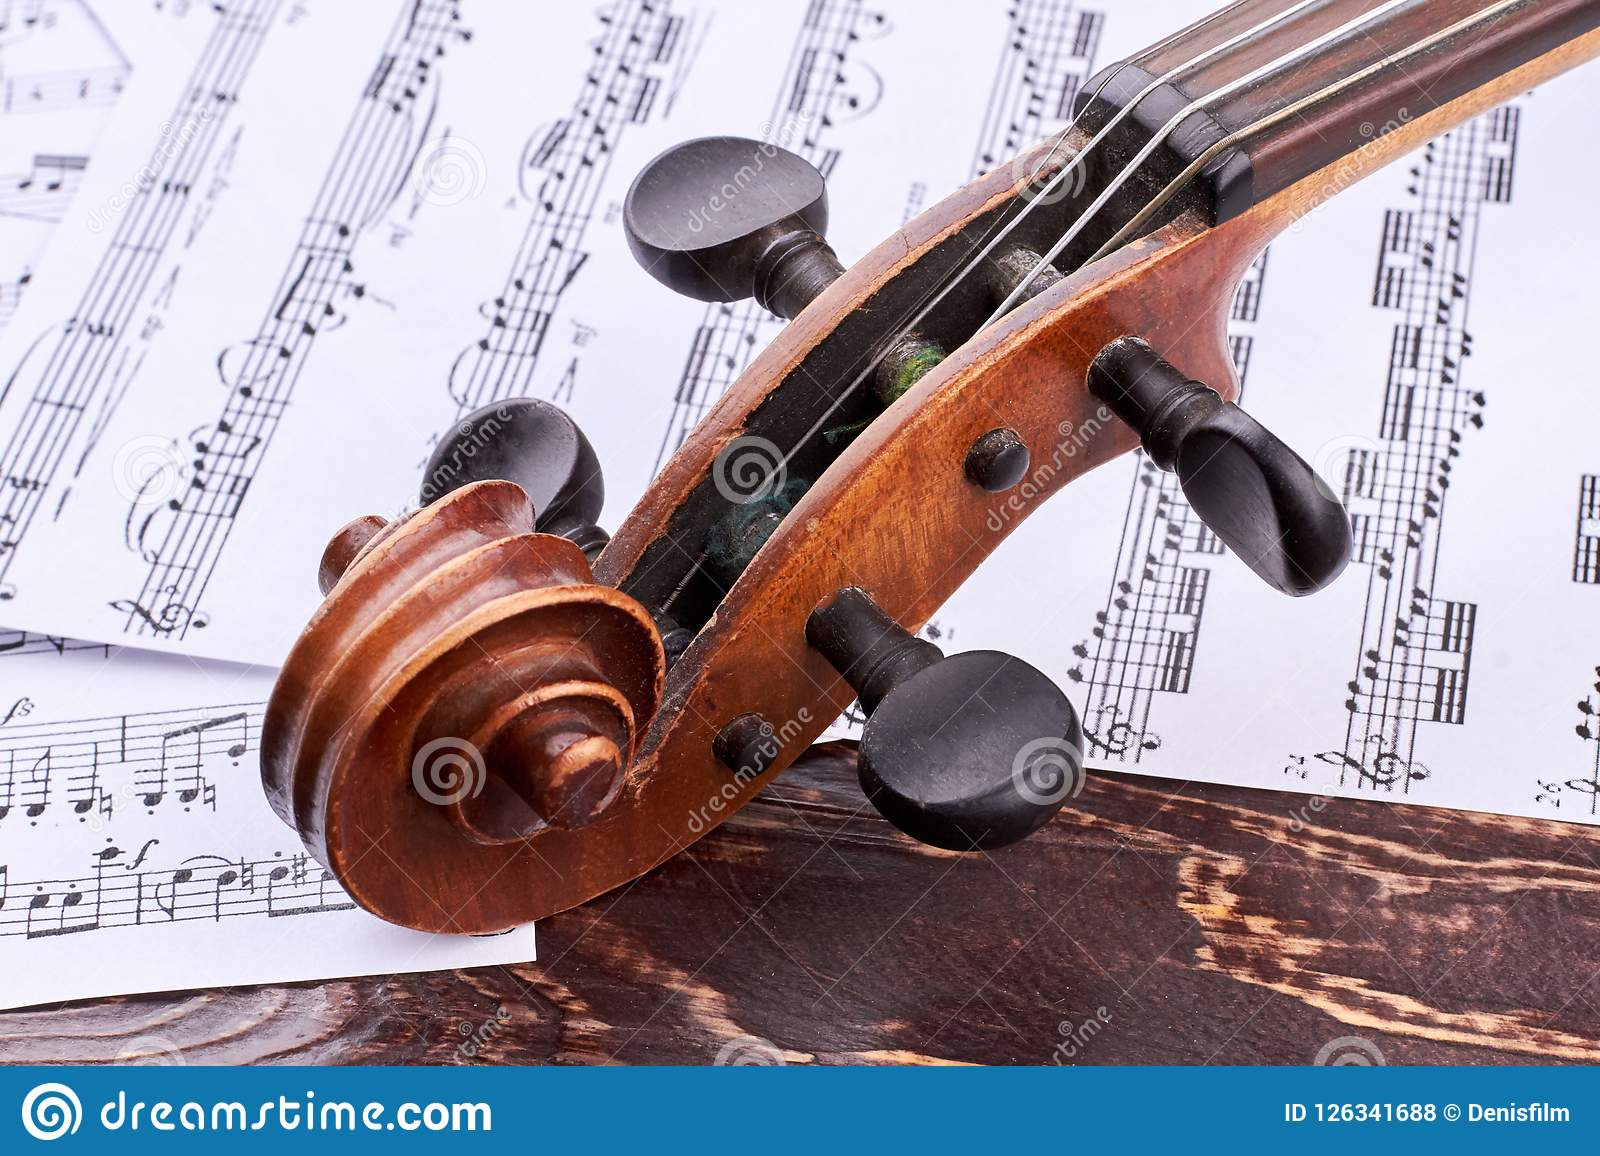 Old Violin Scroll And Peg Box  Stock Photo - Image of